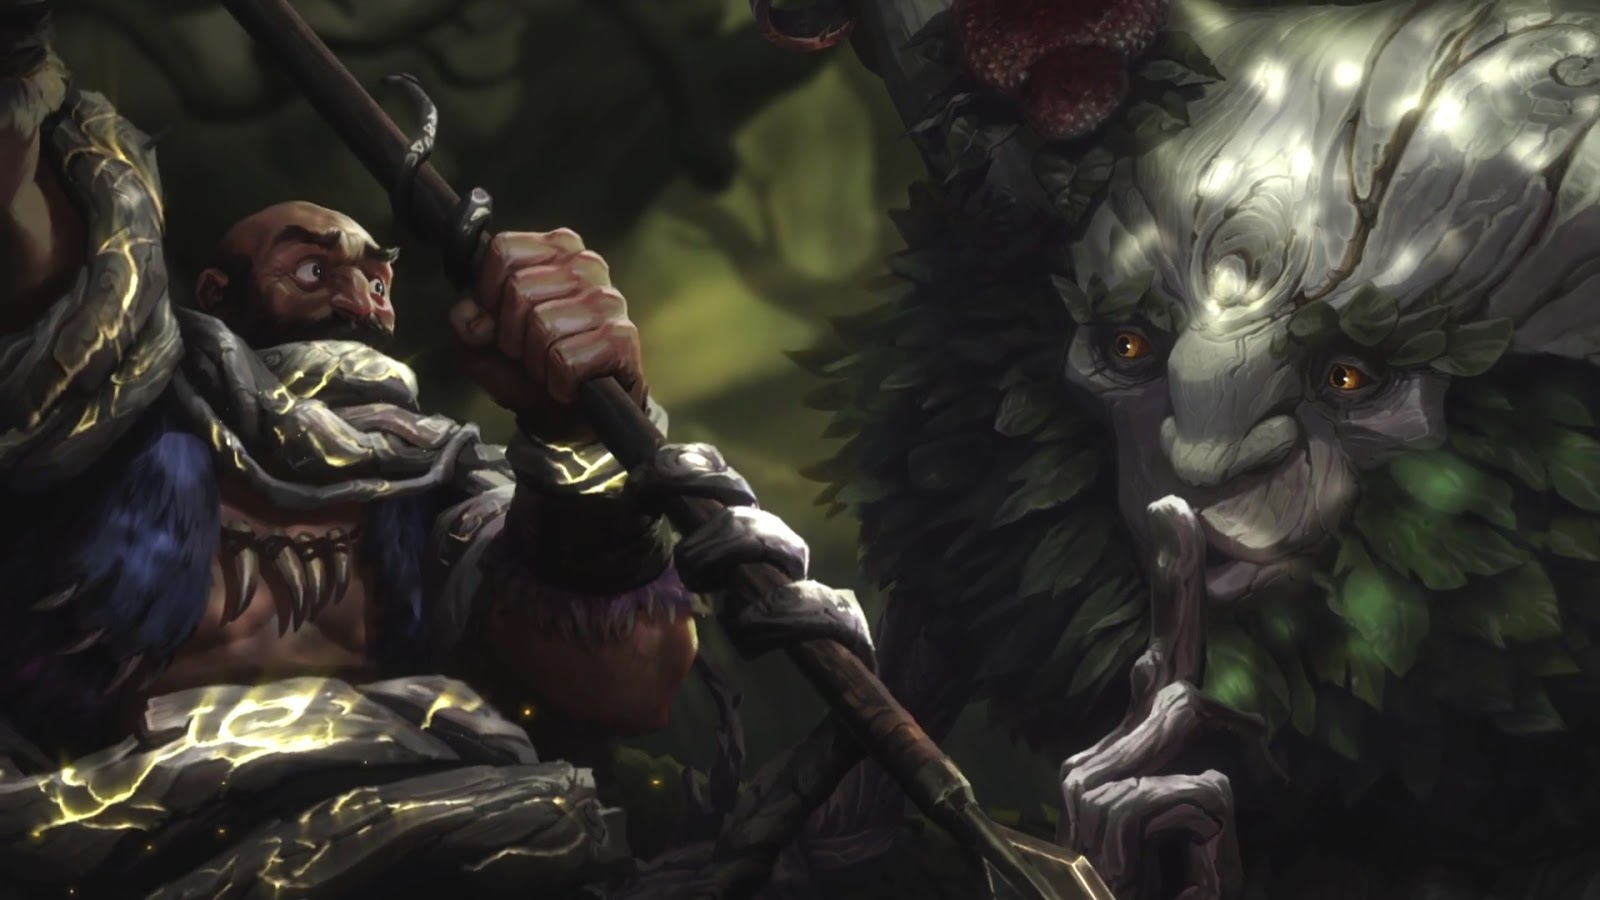 Ivern: Friend of the Forest